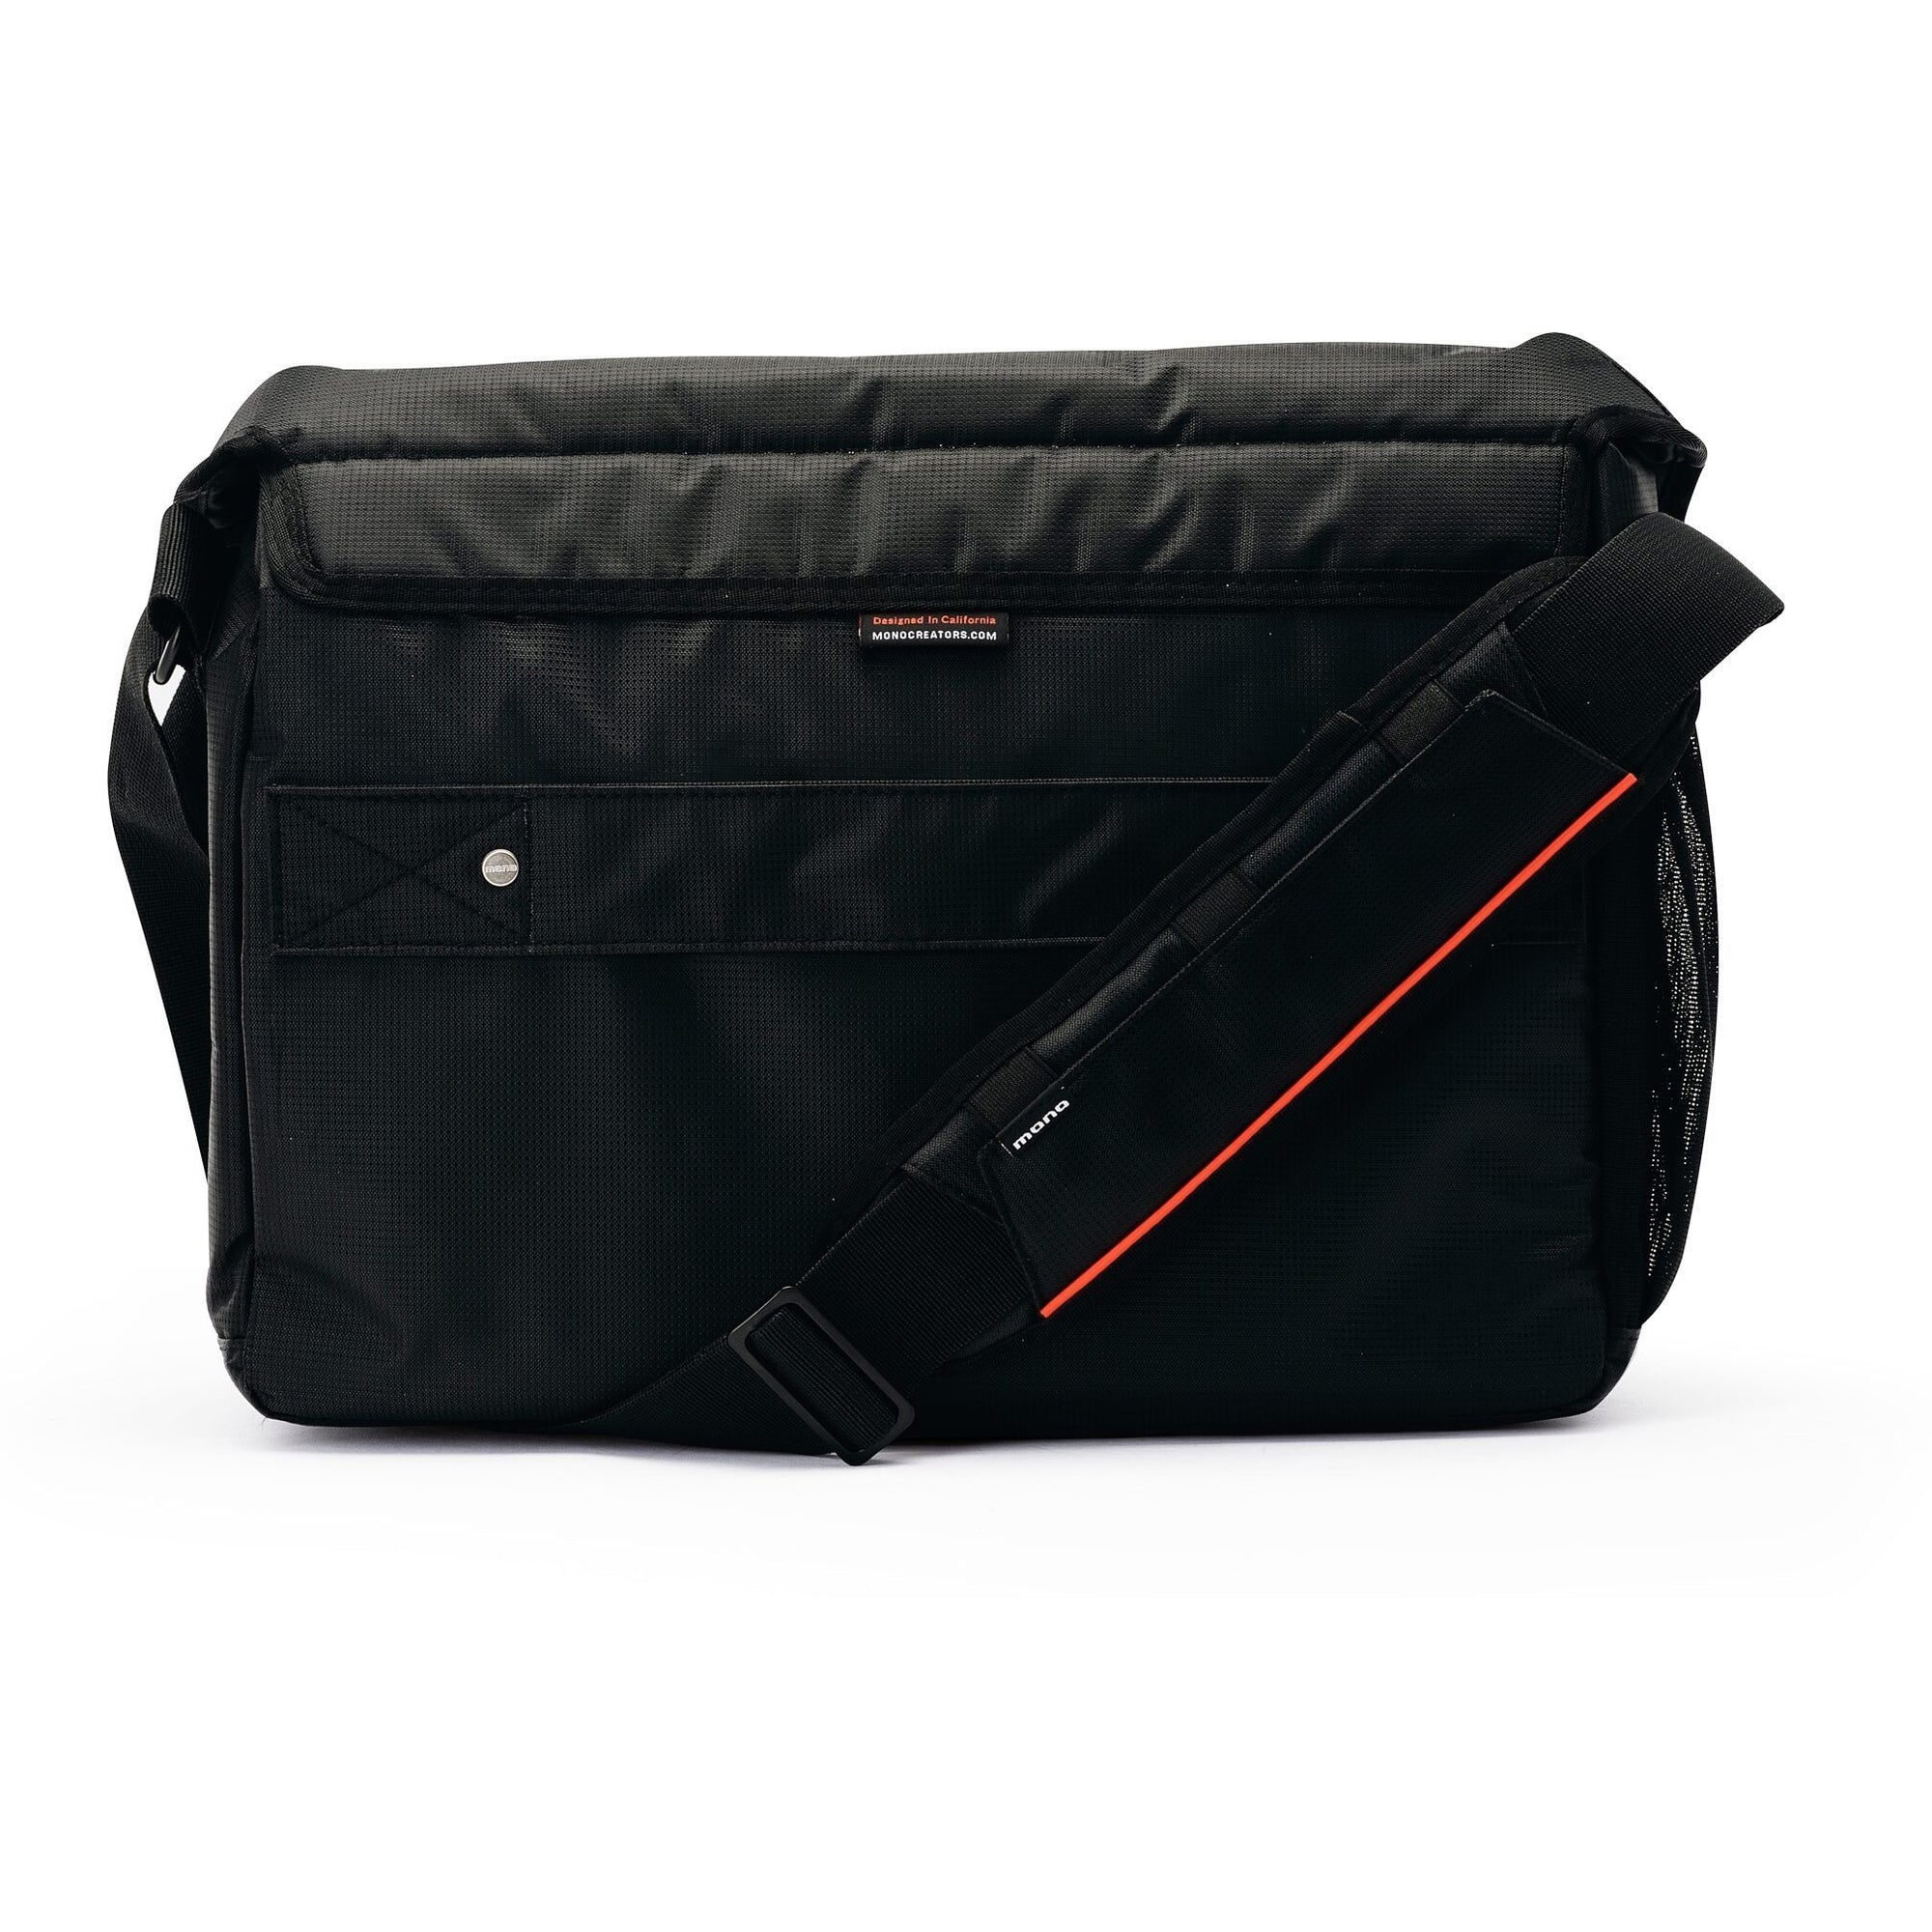 MONO M80-STRM M80 Stealth Relay Messenger Bag, Black